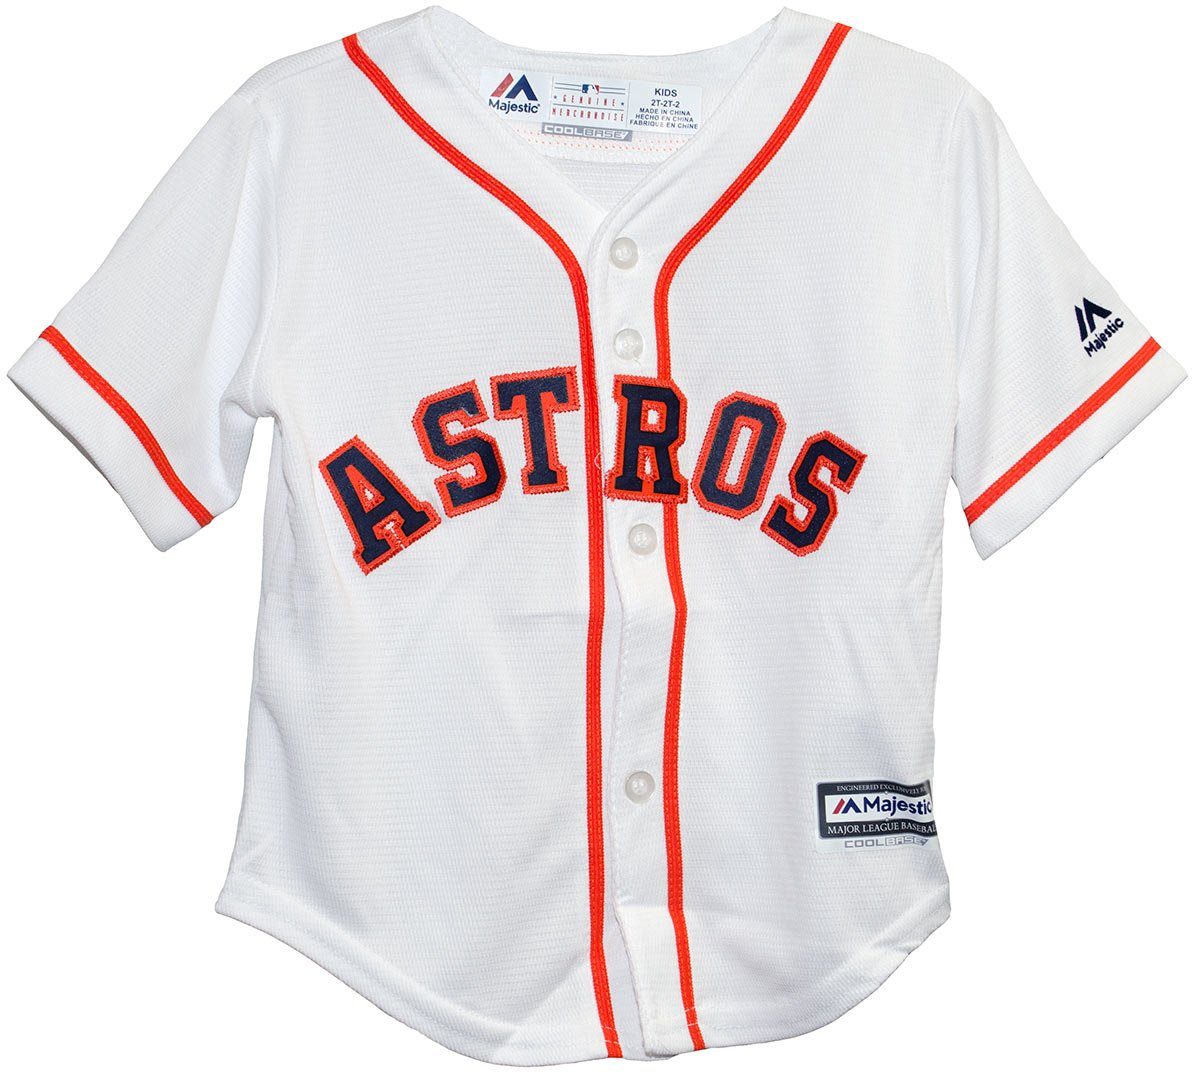 cbc654556d7c Amazon.com  Houston Astros 2015 Home Cool Base Infant Jerseys (24 ...